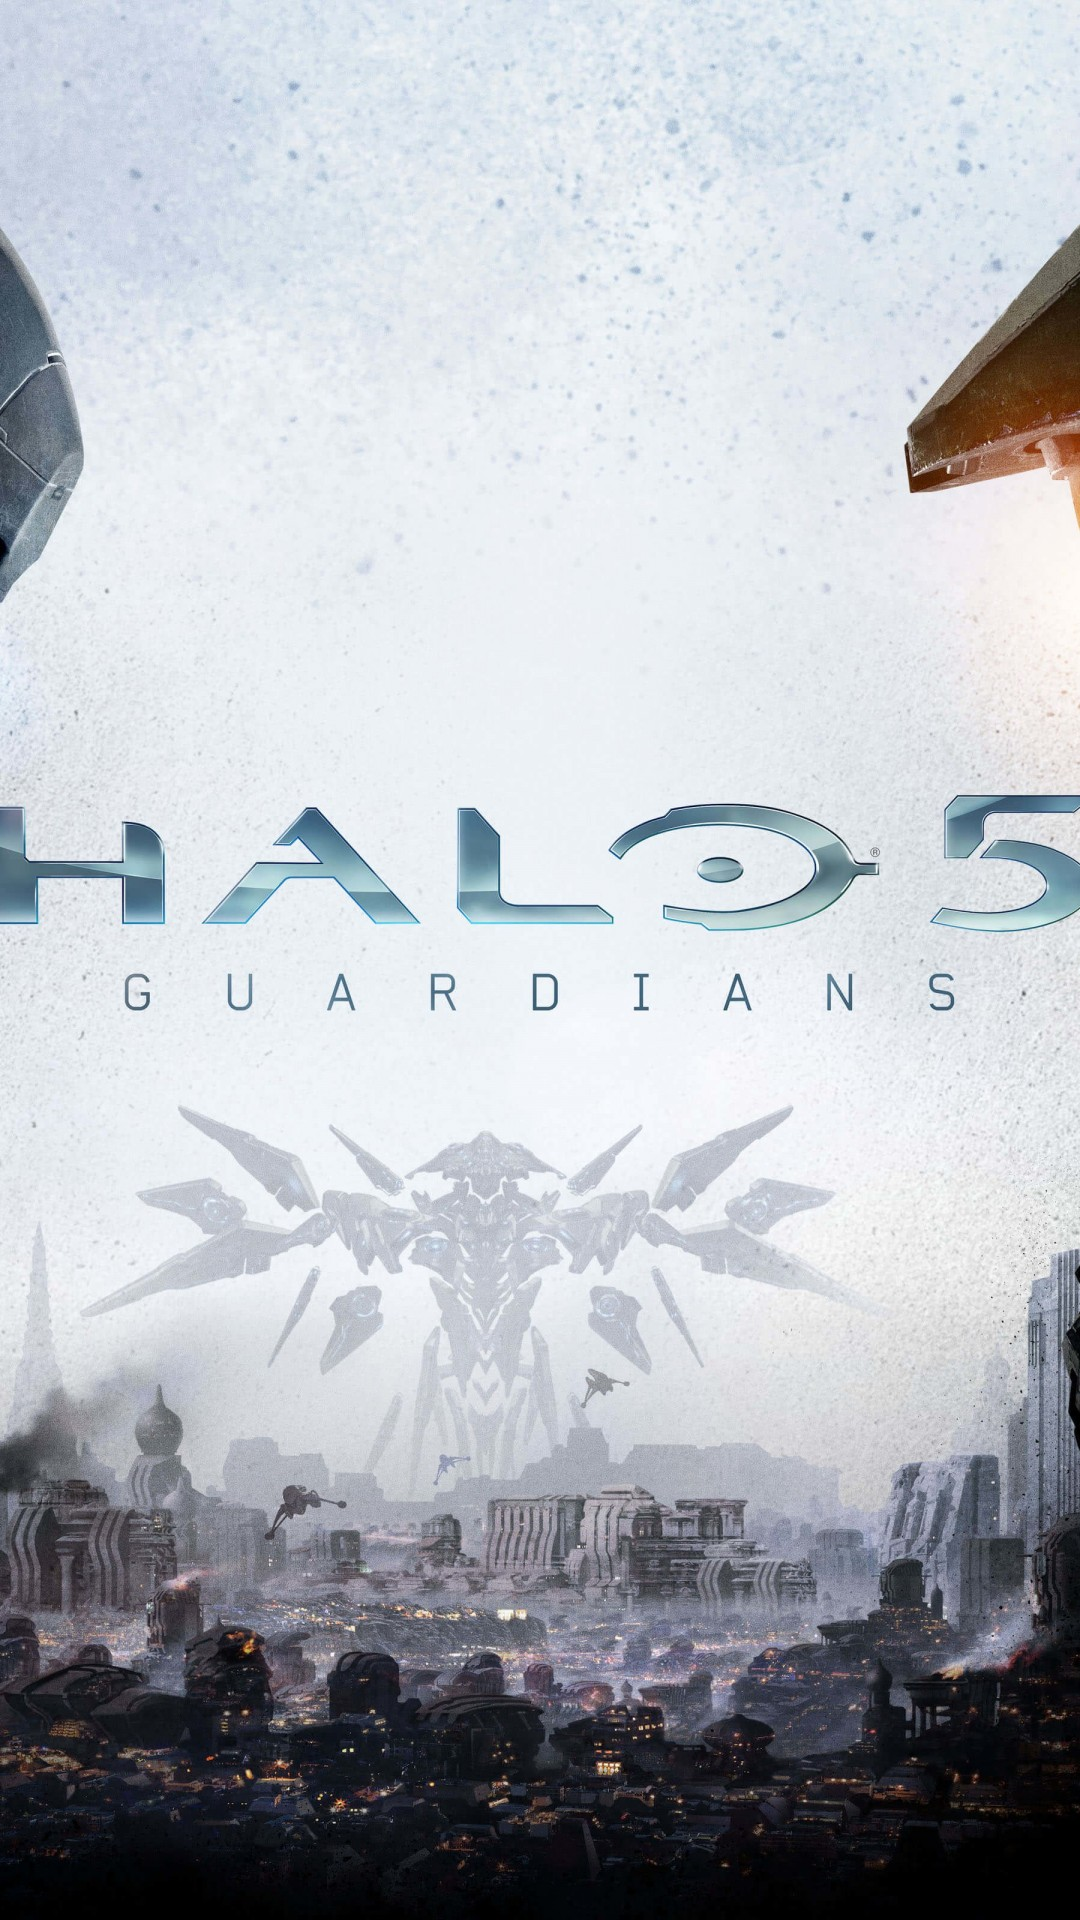 Halo 5: Guardians Wallpaper for SONY Xperia Z1